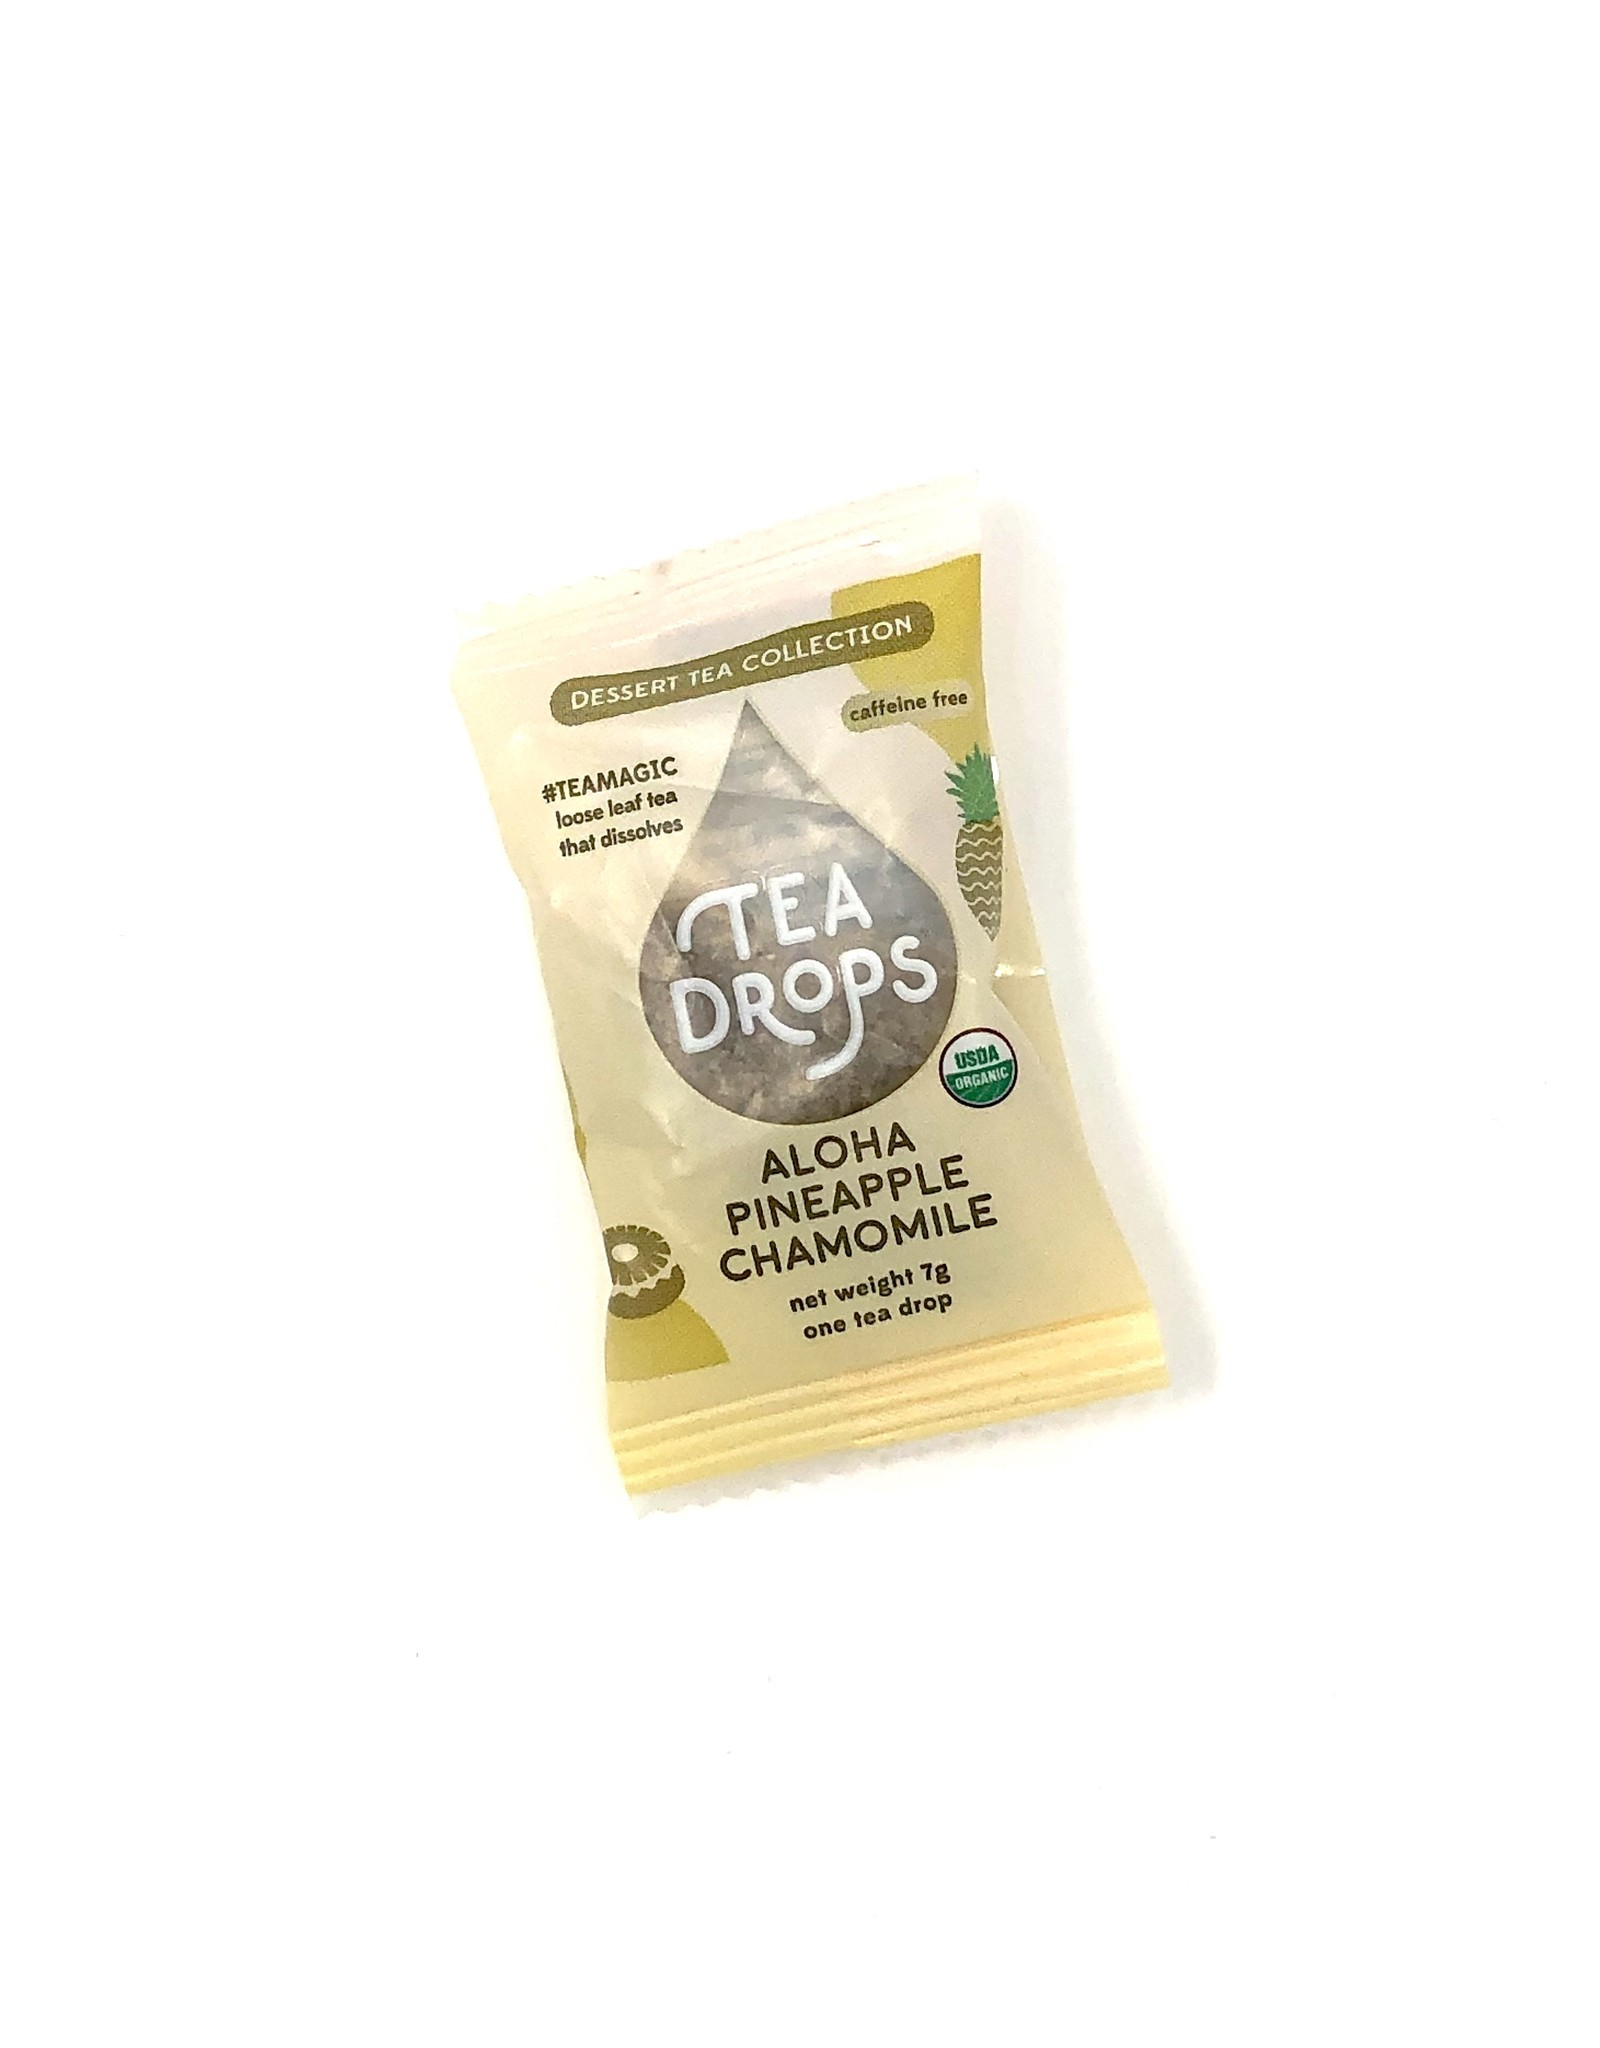 Aloha Pineapple Chamomile Tea Drop